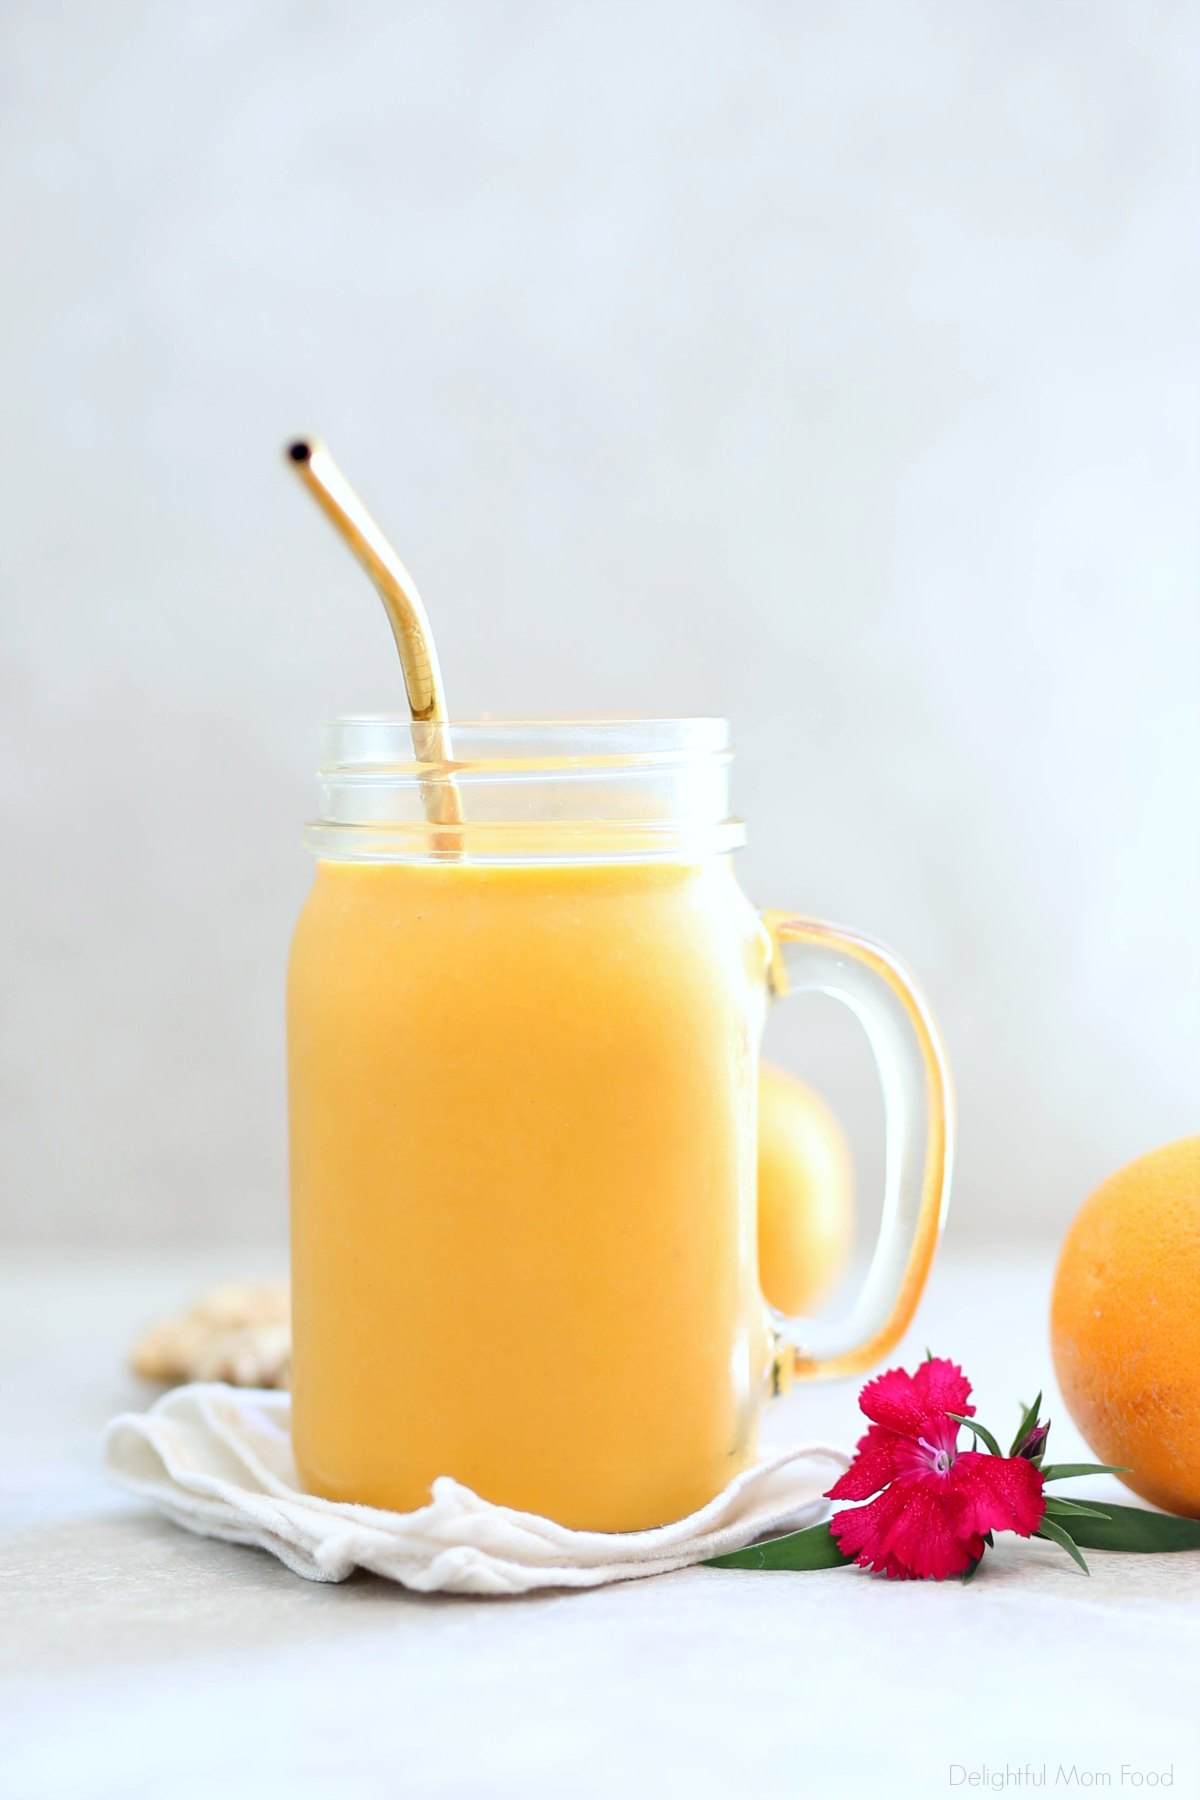 Anti inflammatory smoothie loaded with immunity boosting nutrients from carrot, ginger and turmeric! Reduce inflammation, support healthy joints, eyes, skin, hair, heart, mood and more with this tasty smoothie recipe. #gingerturmericsmoothie #gingersmoothie #turmericsmoothie #vegan #anti-inflammatory #reduceinflammation #recipe #smoothie #vegetarian #dairyfree #glutenfree #orangesmoothie #delightfulmomfood | Recipe at Delightful Mom Food